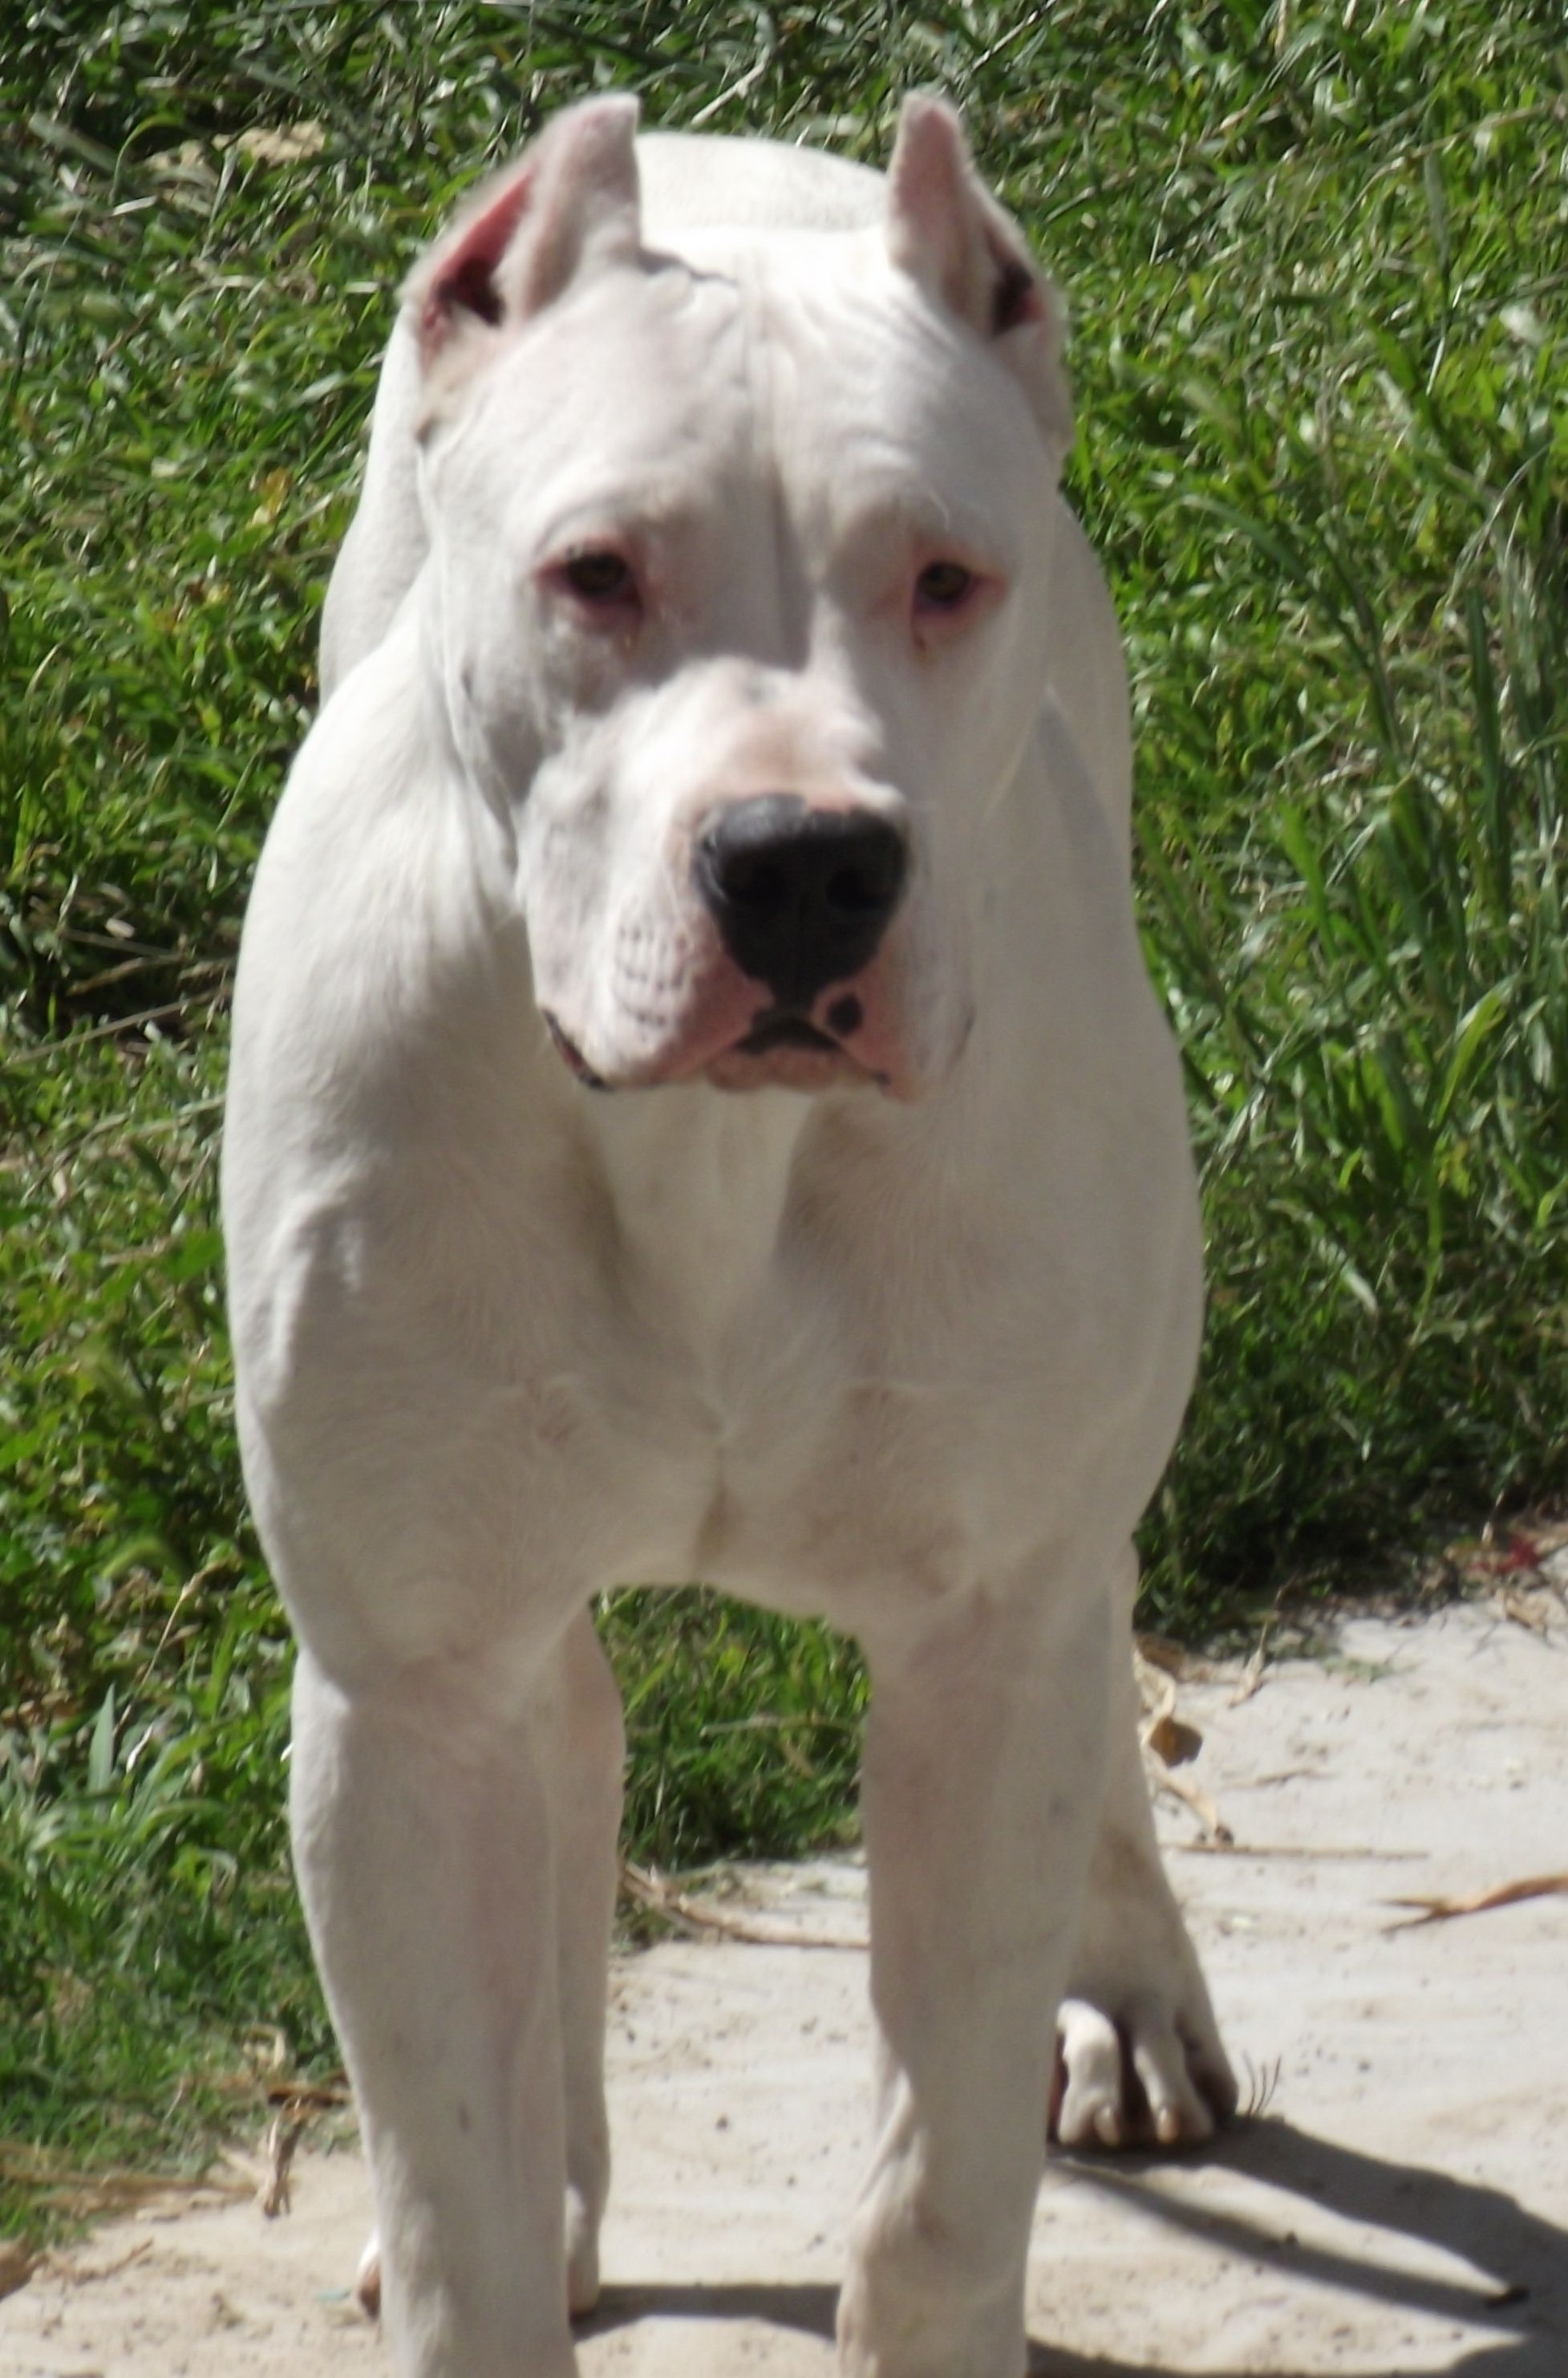 Dogostandard Jpg Dog Argentino Pitbull Terrier Dog Breeds